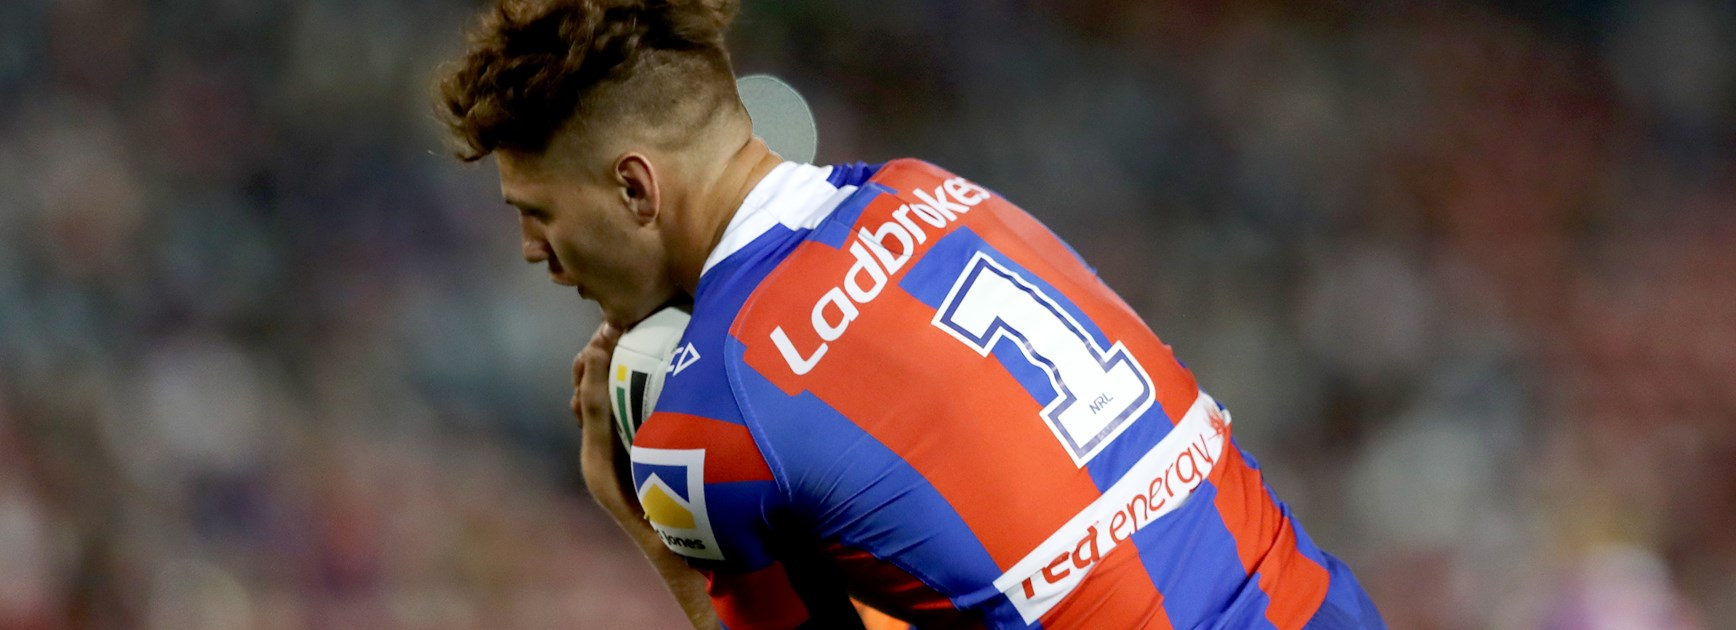 Ponga puts team before personal milestones